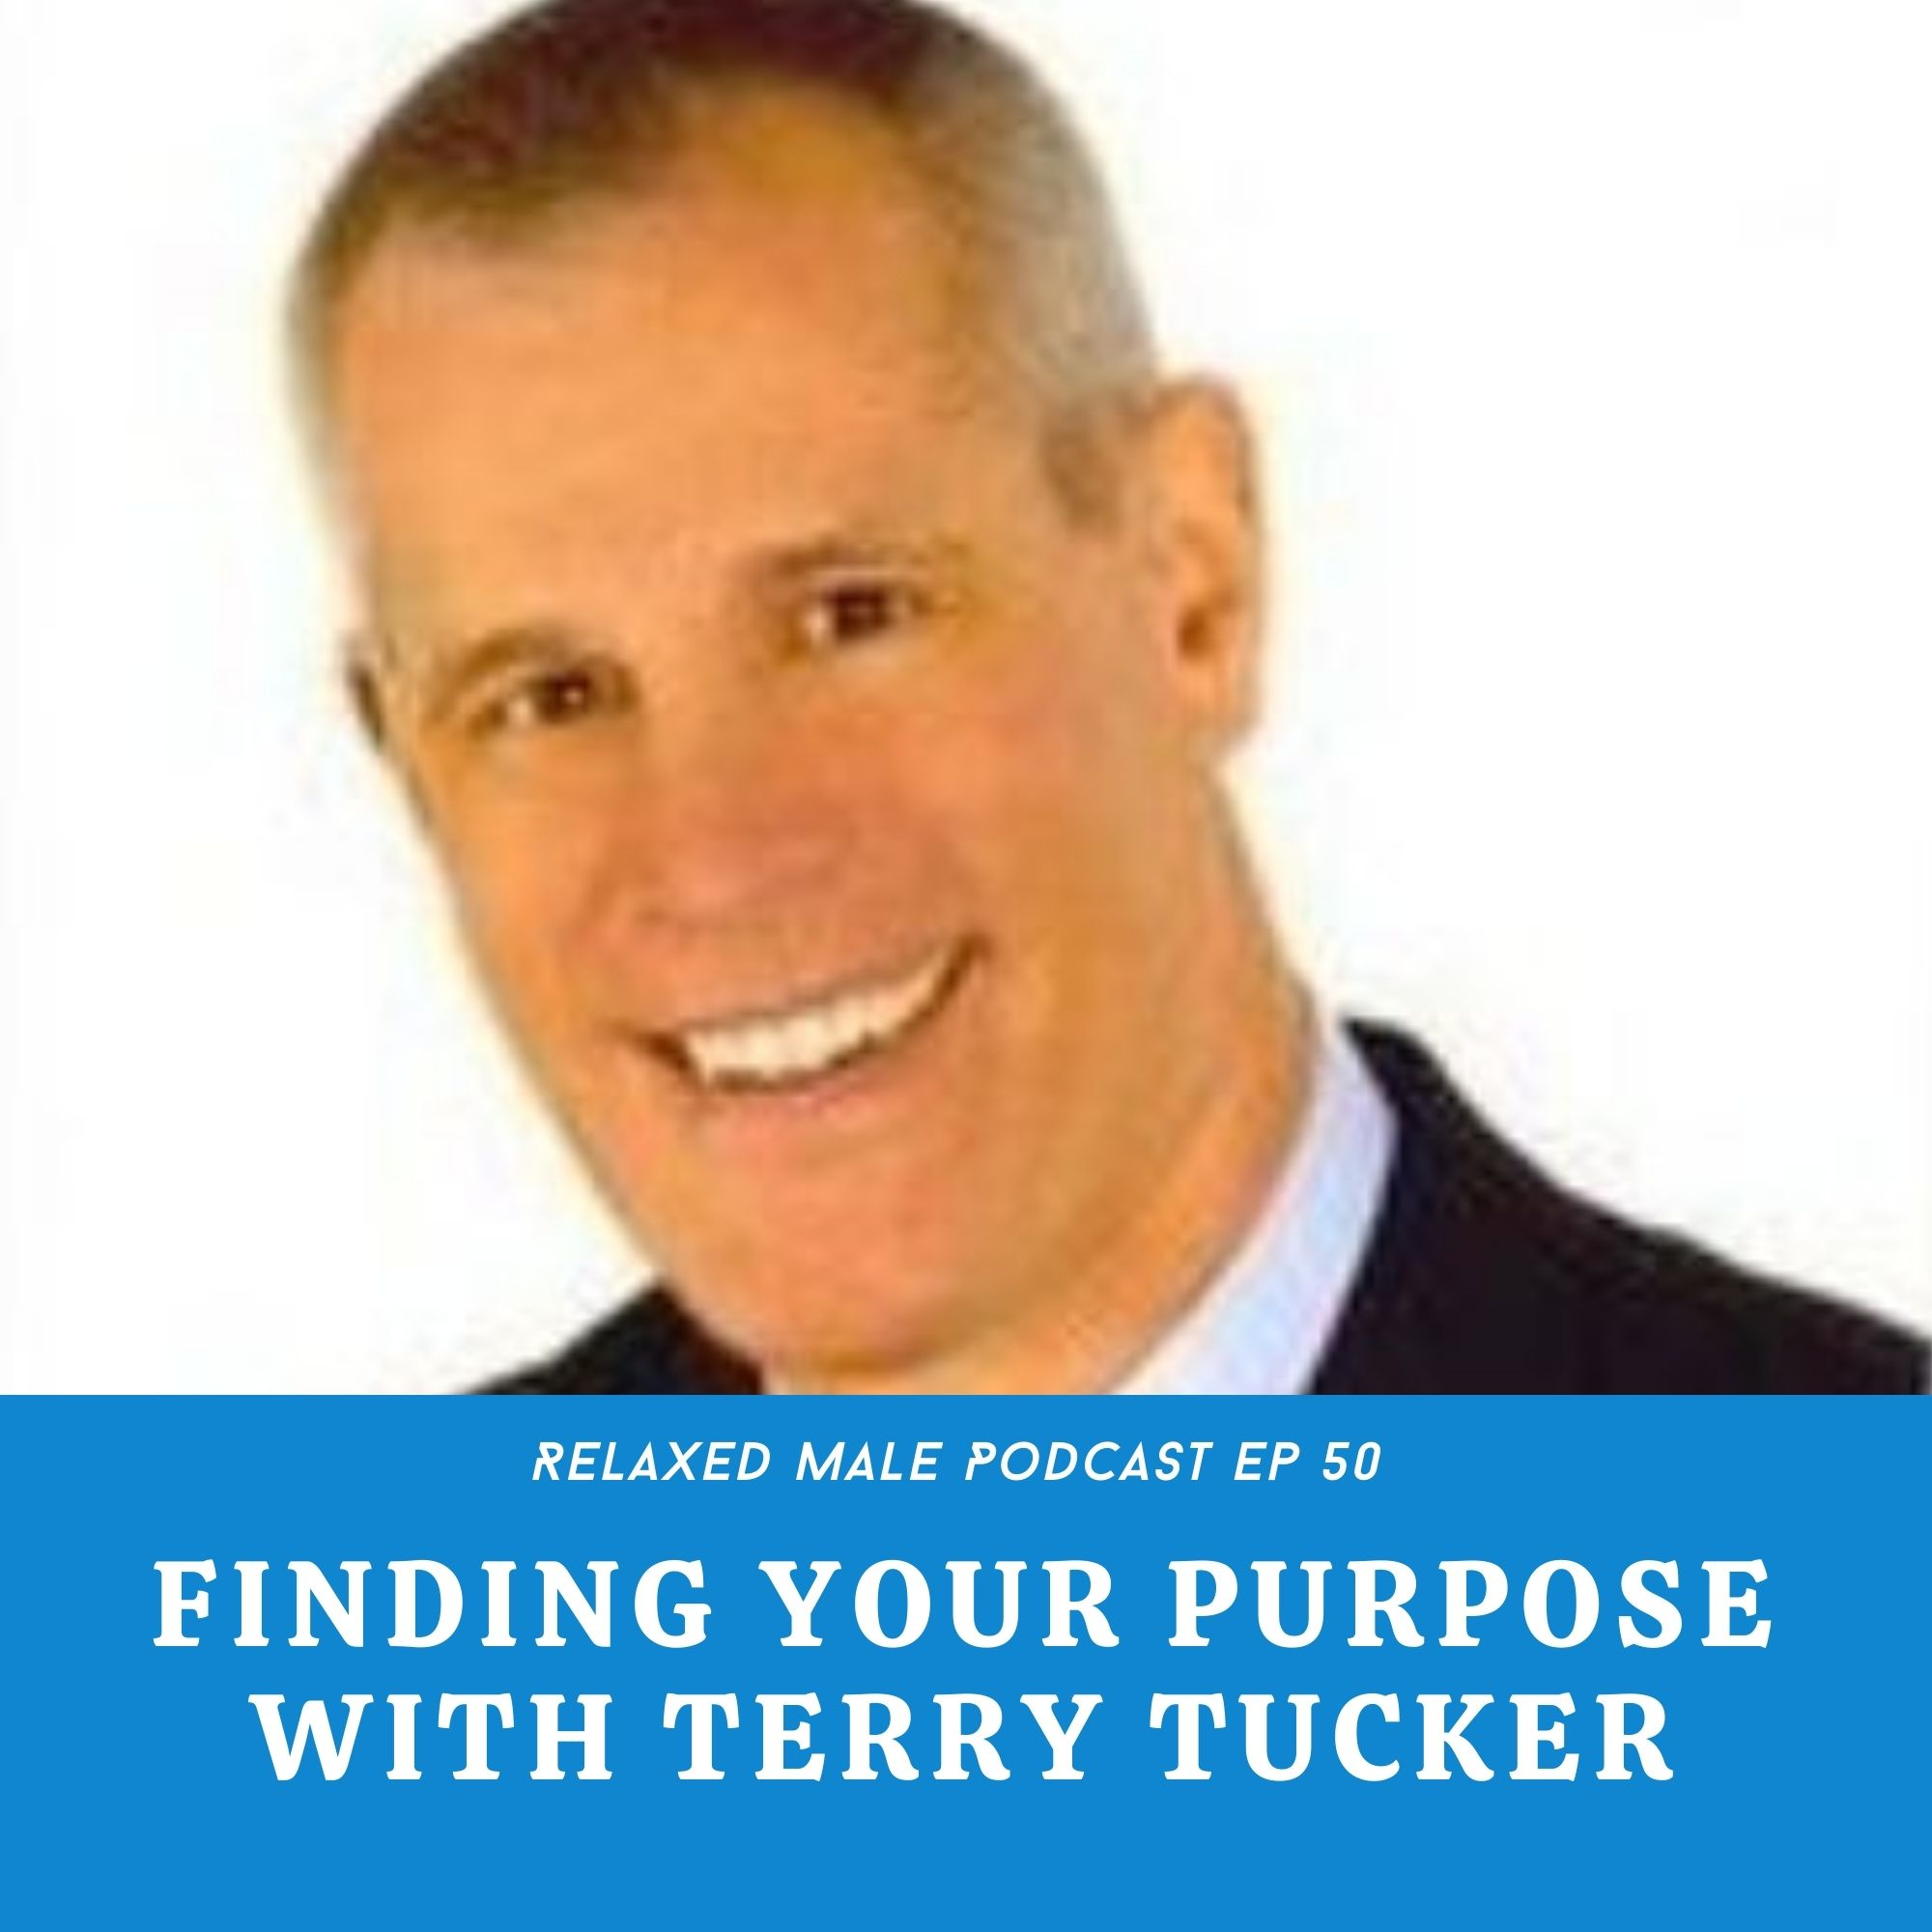 Finding Your Purpose with Terry Tucker